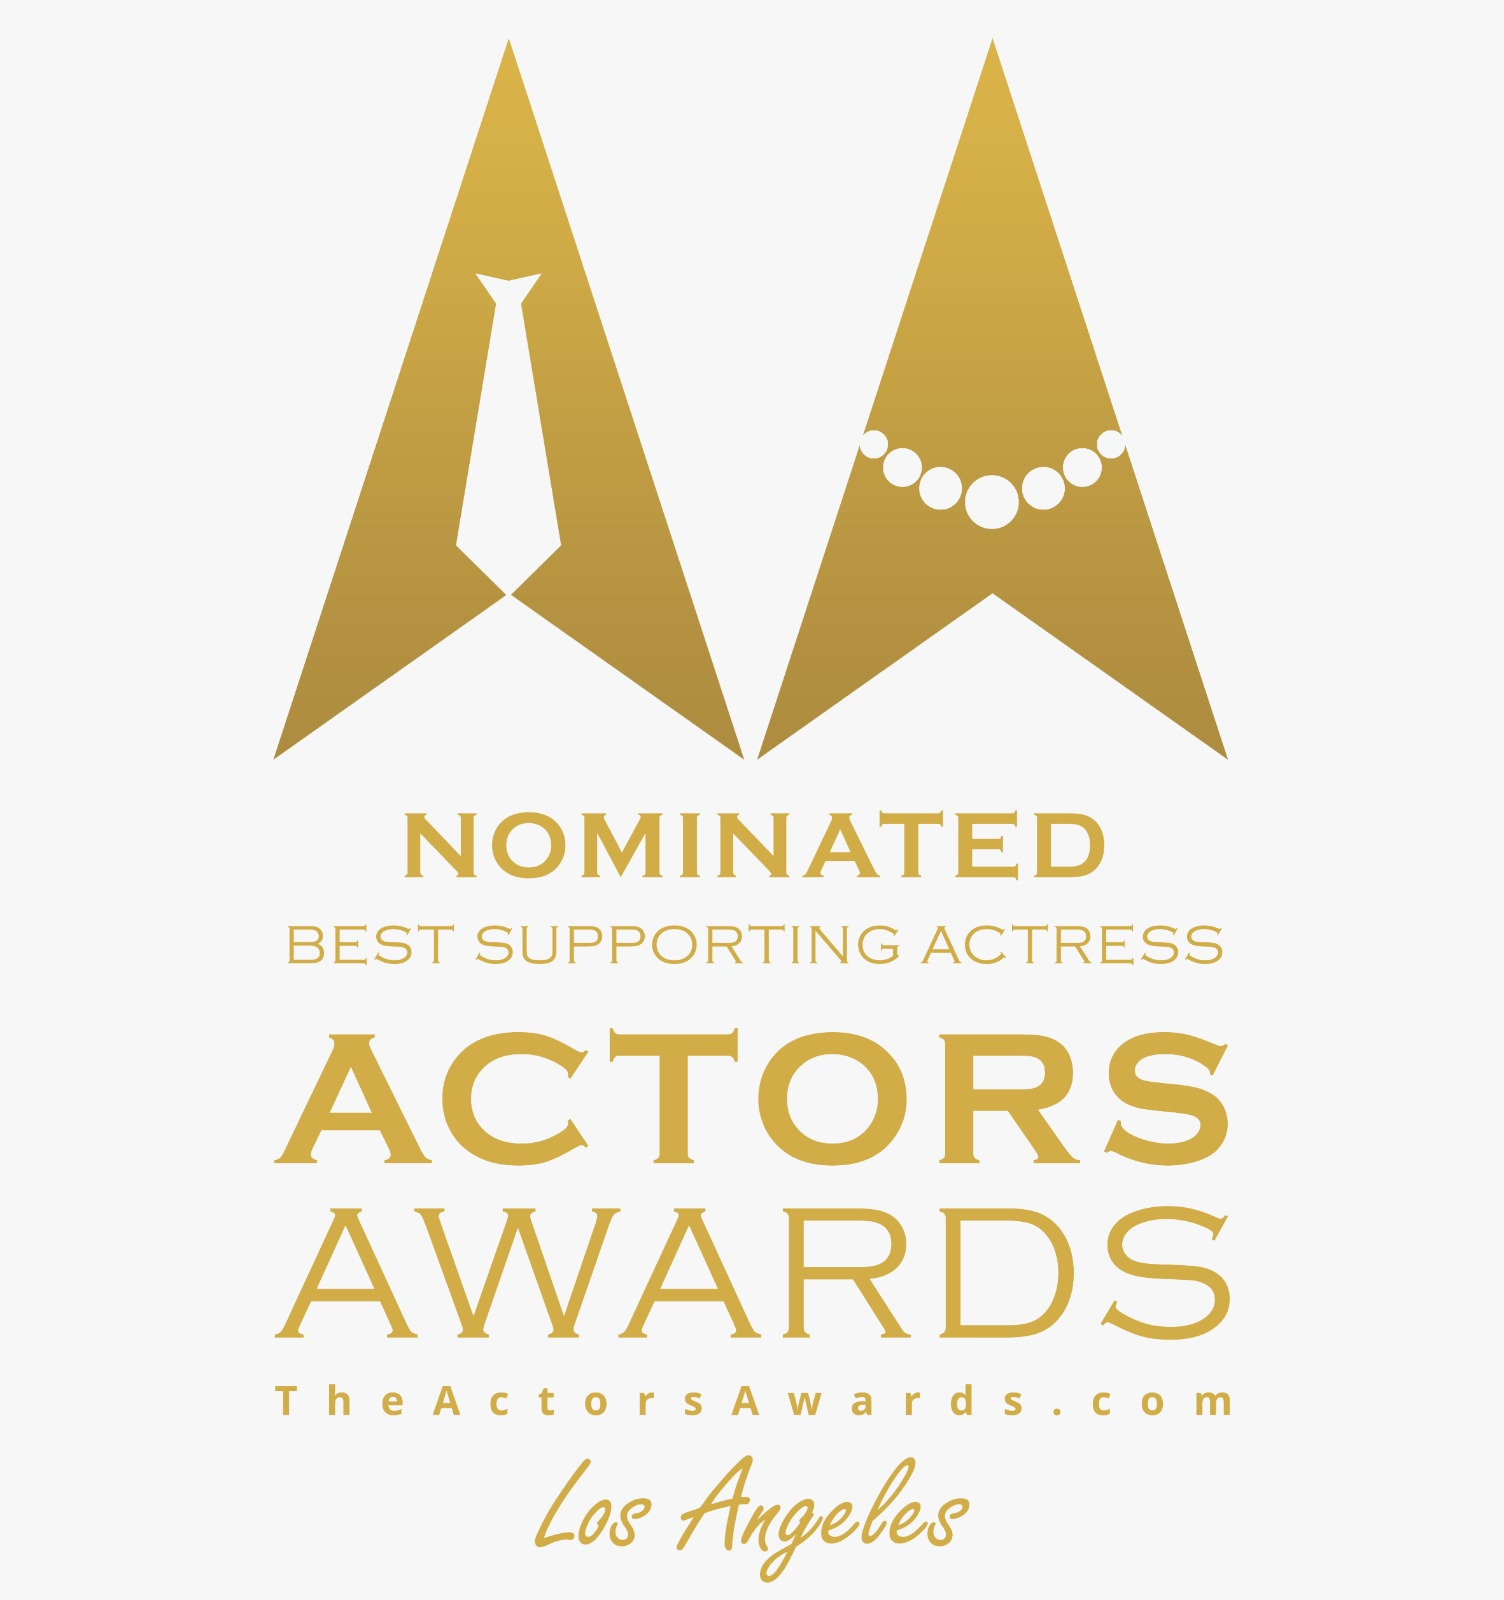 Best Supporting Actress Nomination - Actors Awards